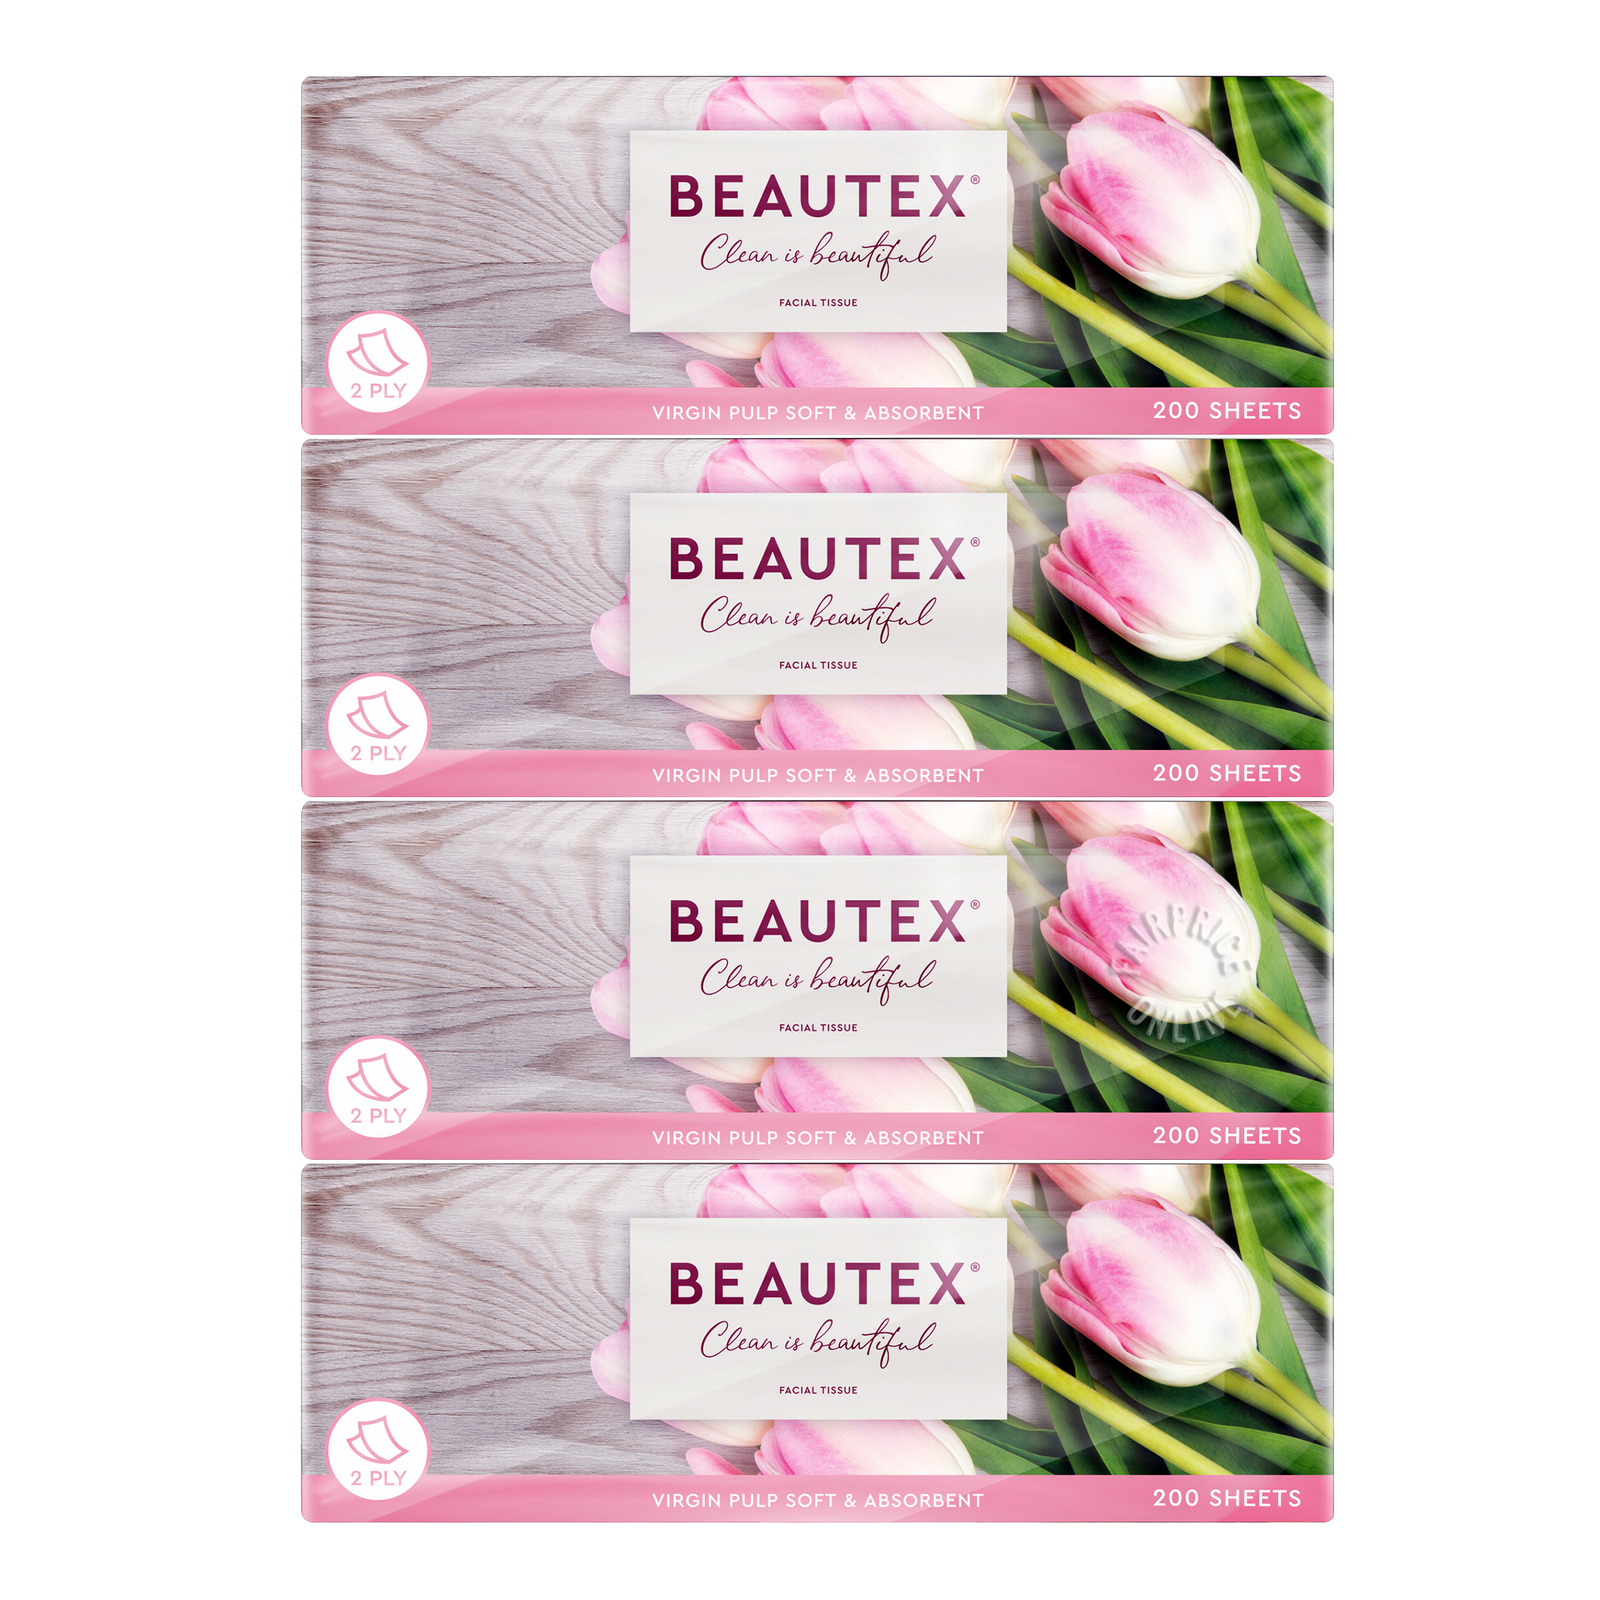 Beautex Facial Tissue - Soft (2ply)